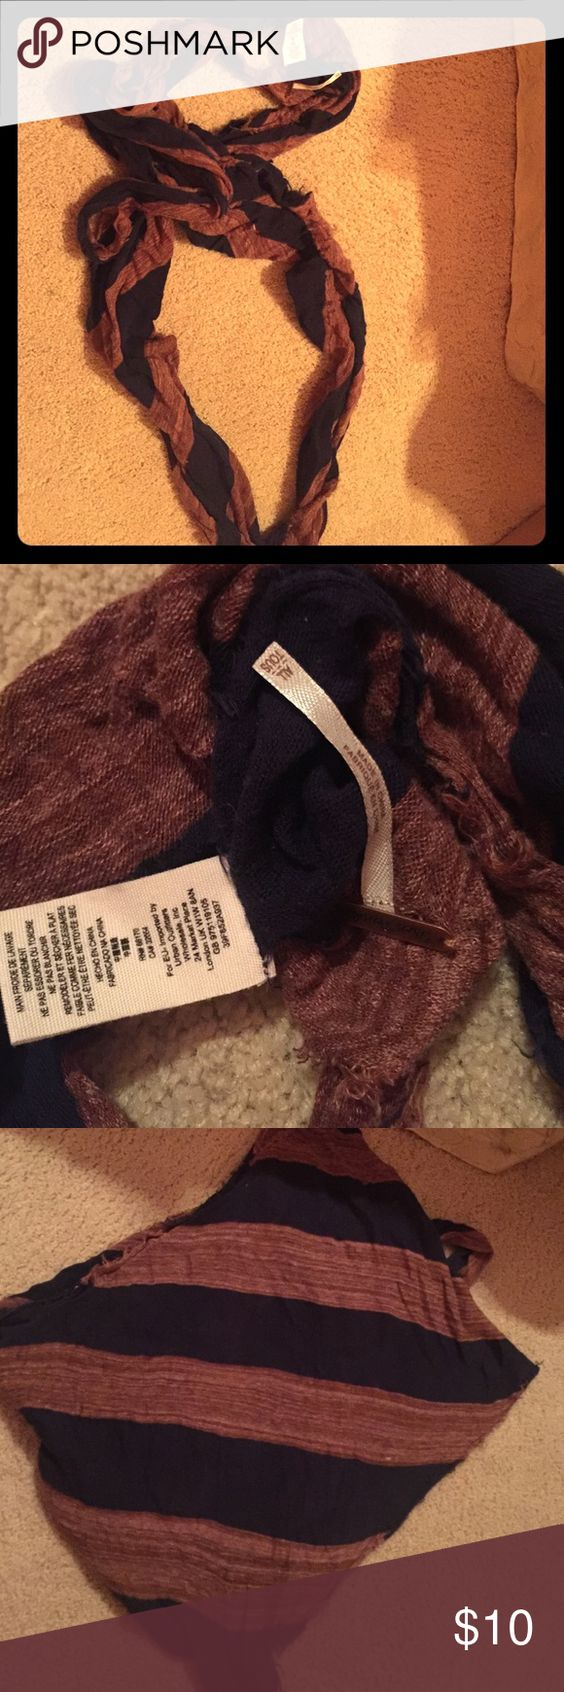 Free People scarf Navy blue and like a burnt orangey/reddish color Free People Accessories Scarves & Wraps